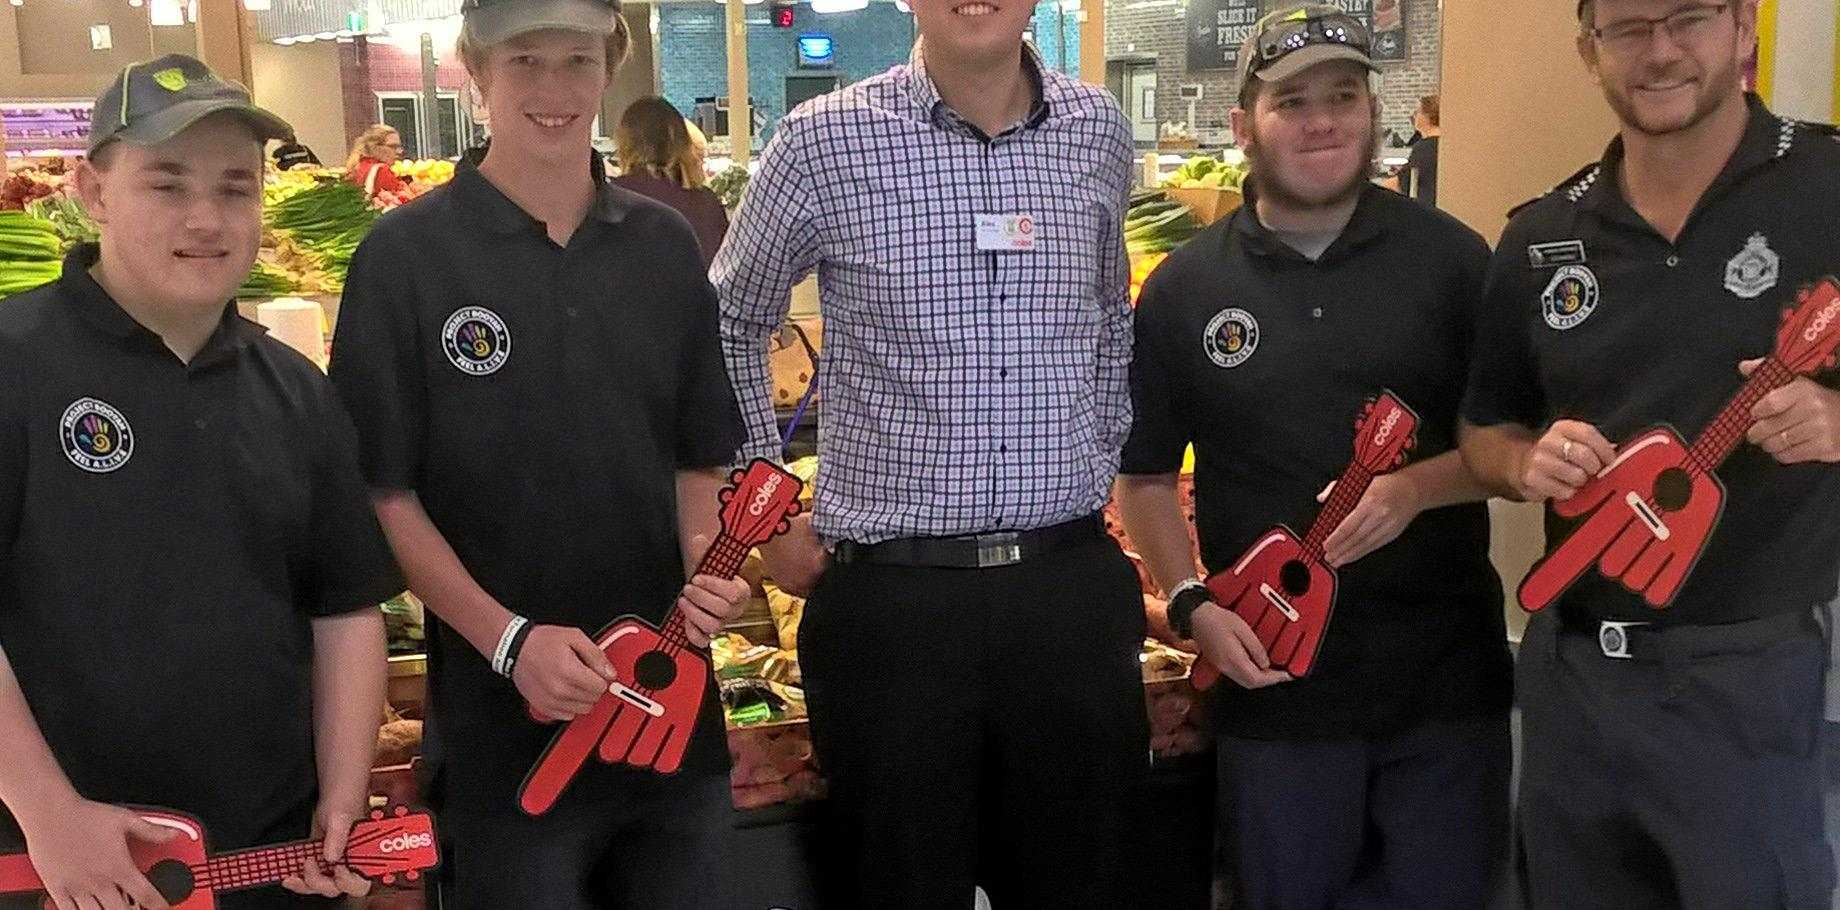 MAKING A DIFFERENCE: Their prices may be down but the community support is up. (from left) Liam, Blayze, Alex (Coles manager, Stockland) Tery and Joe.